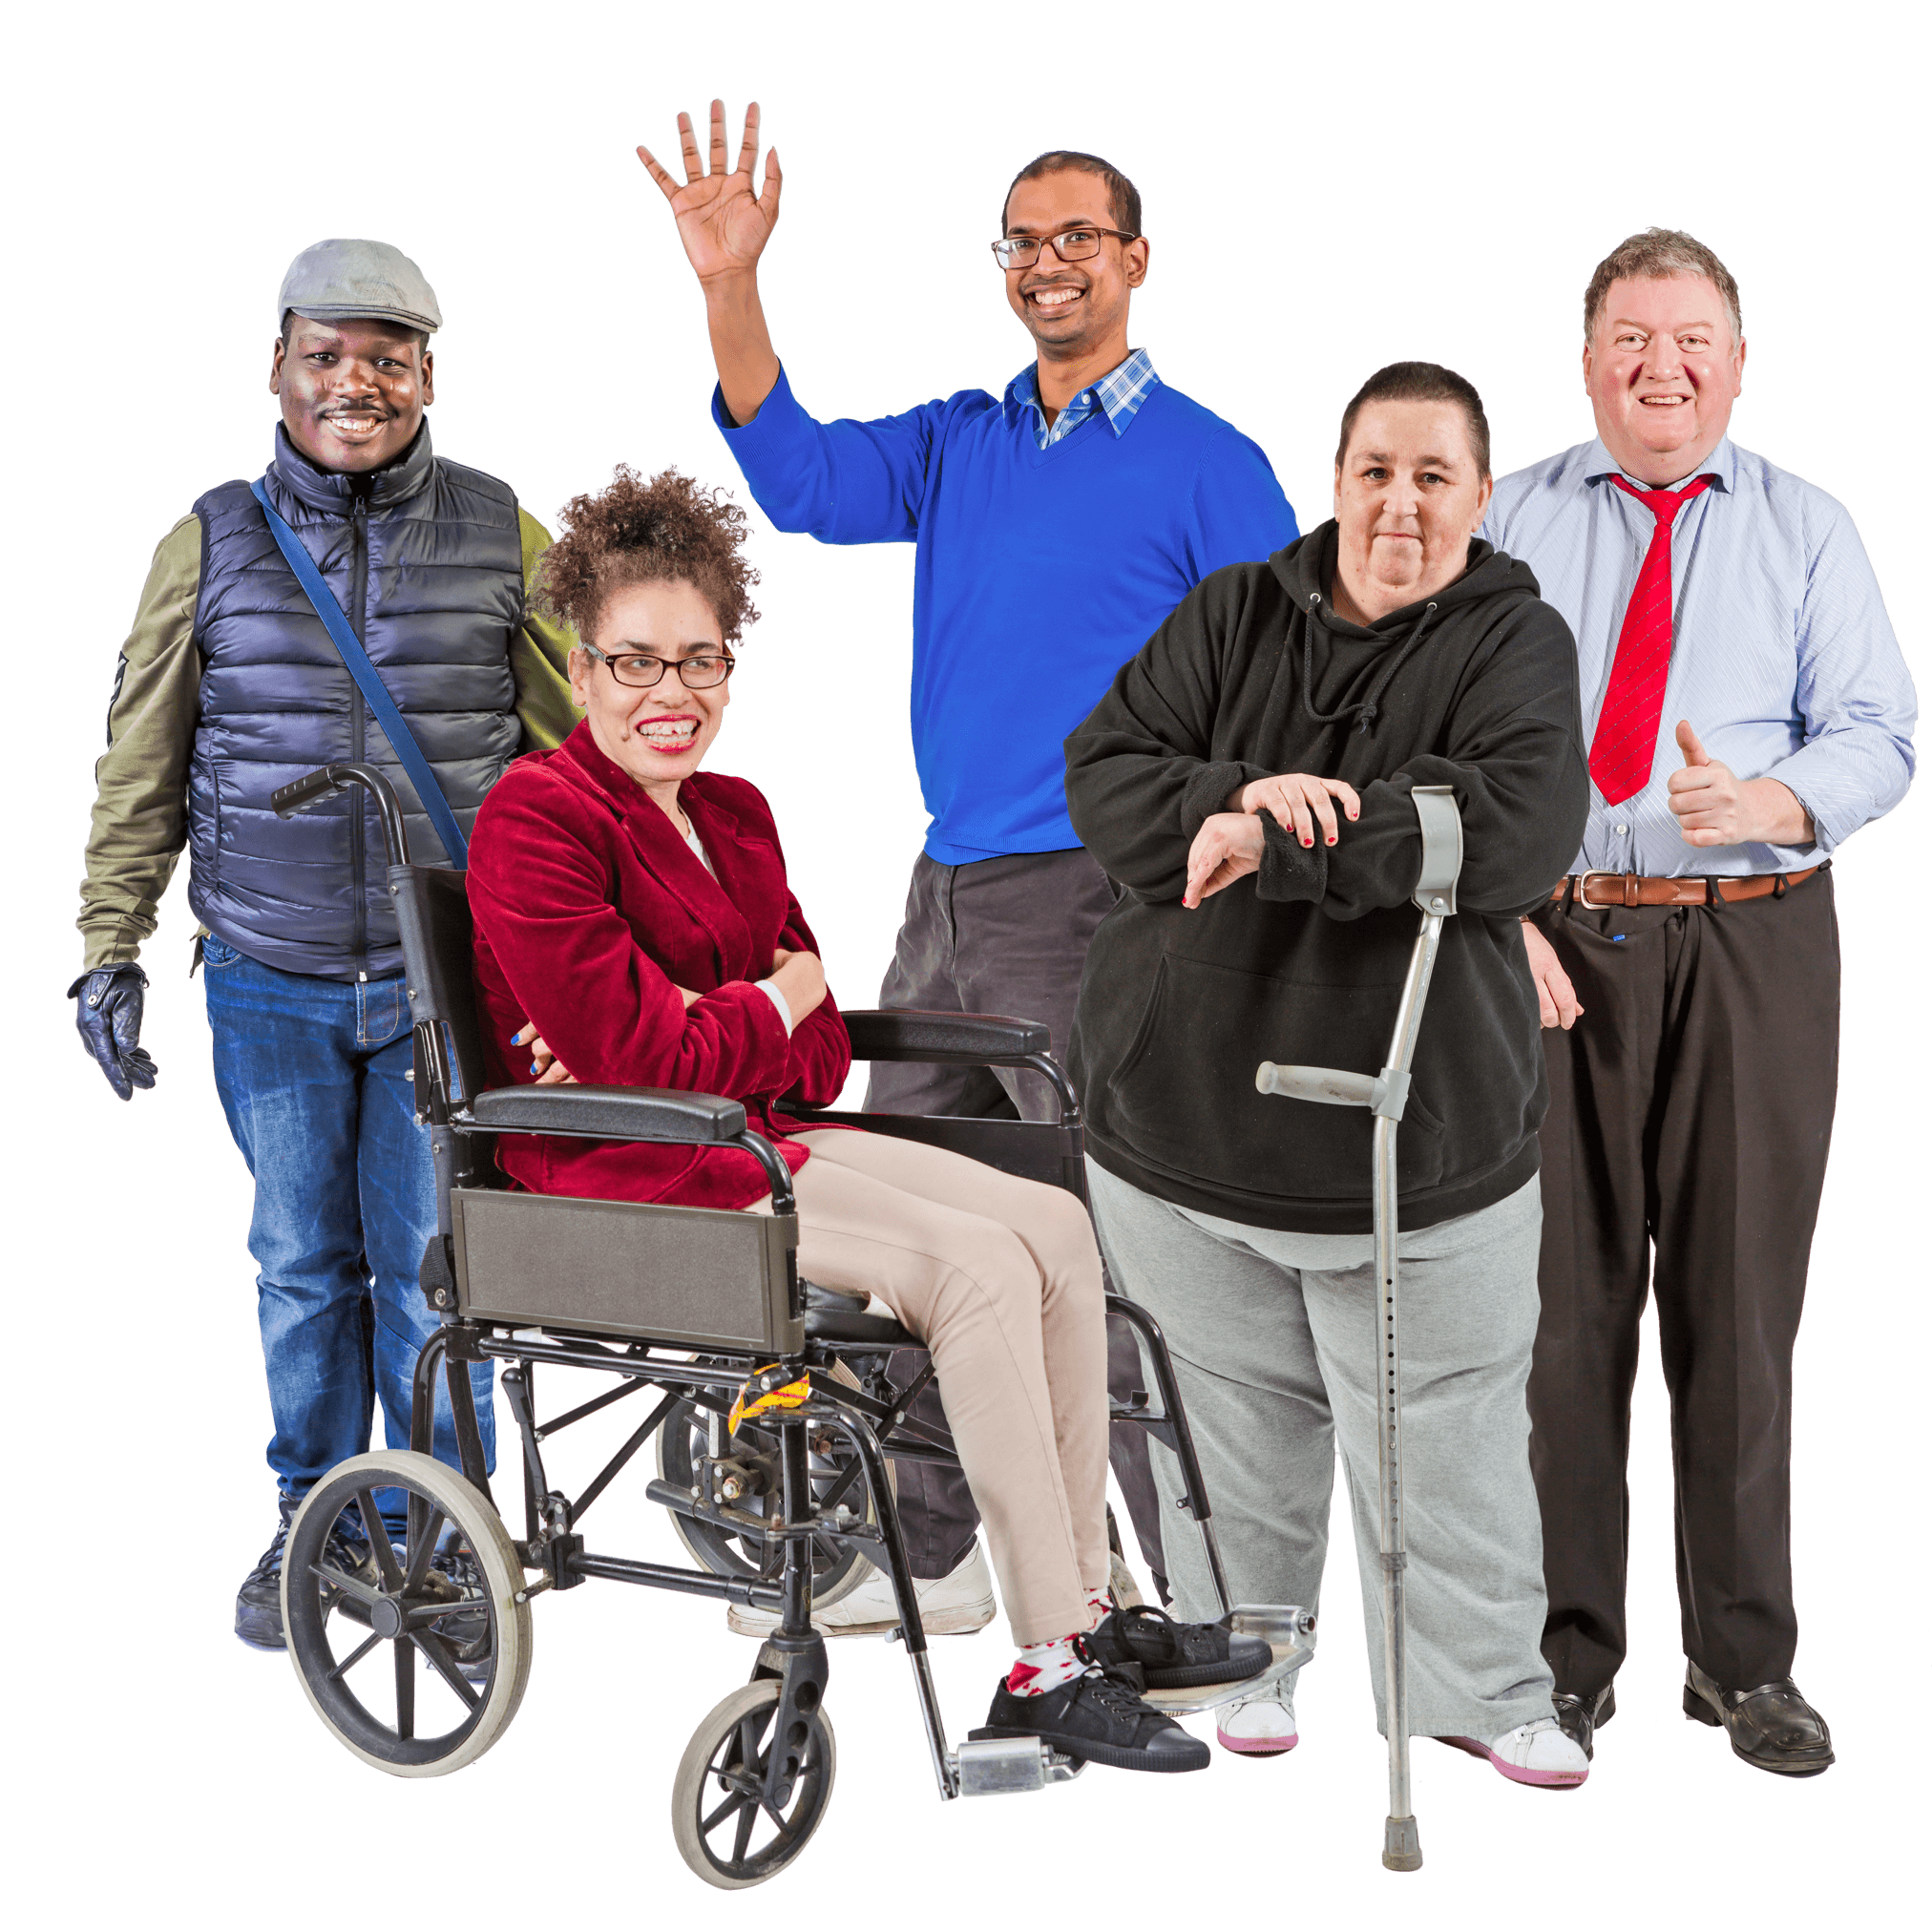 Inclusion Group